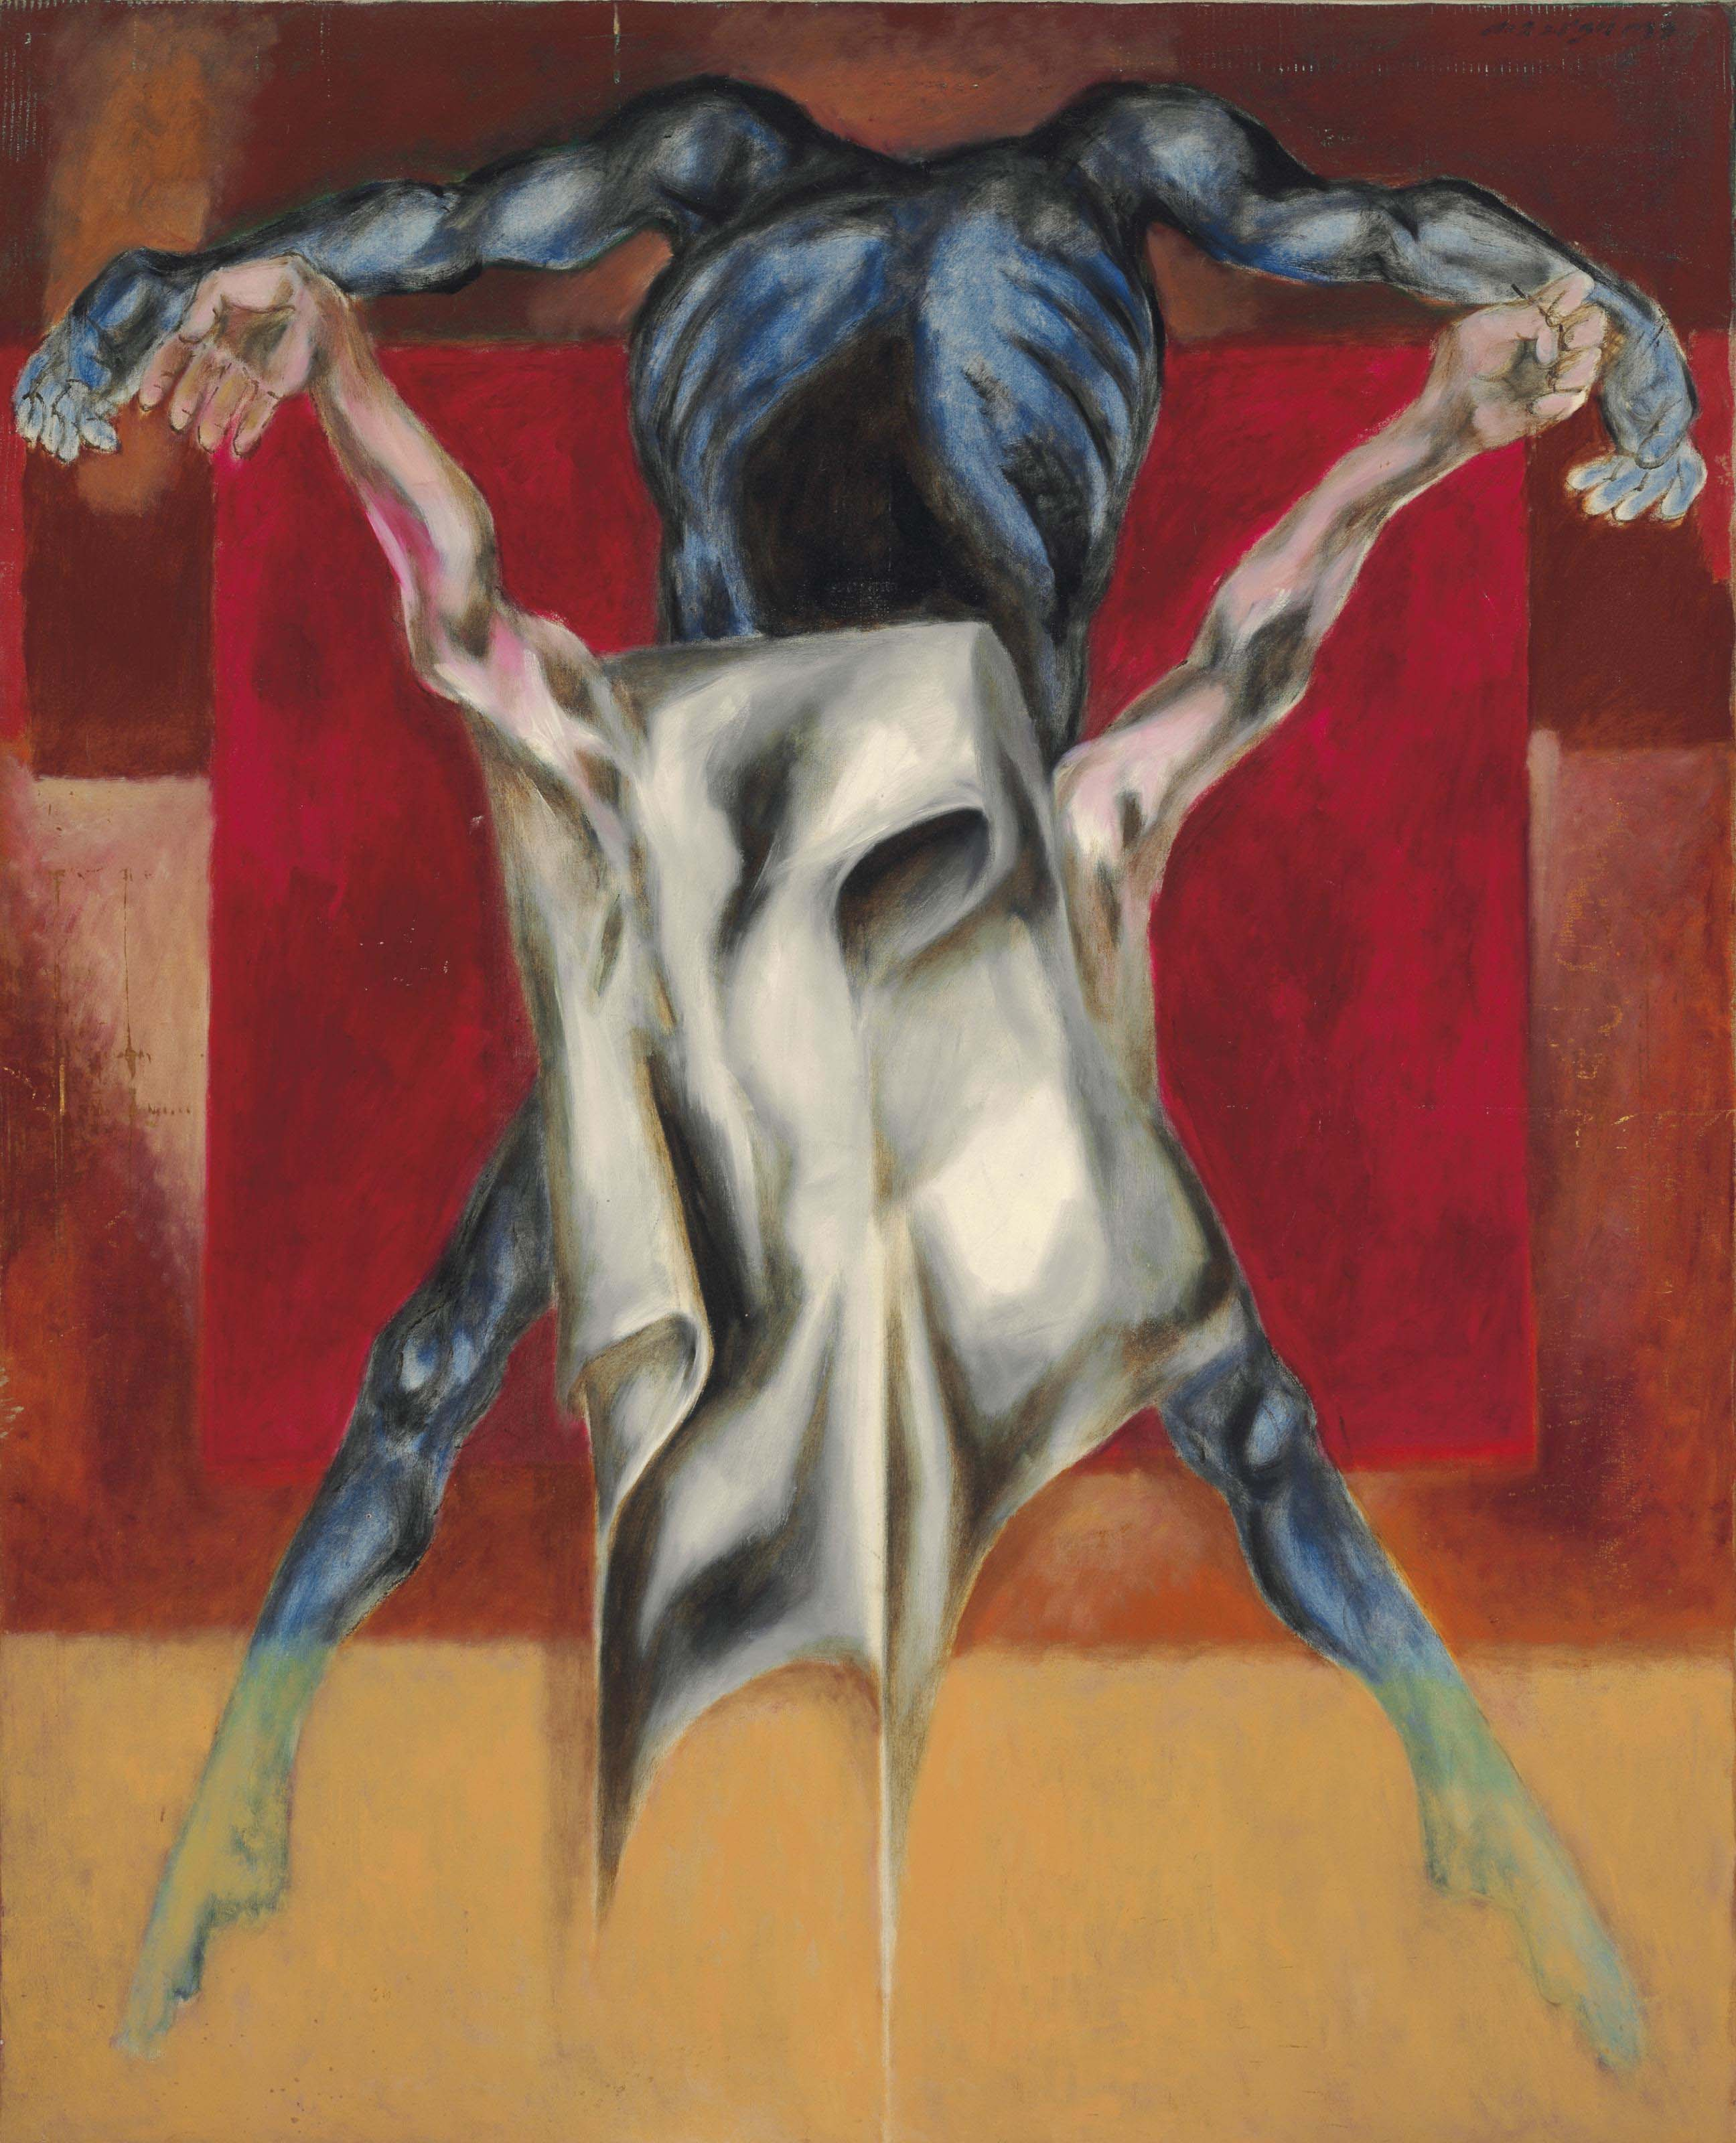 Untitled (Crucifixion); Untitled (after Crucifixion of Mathias Grünewald)